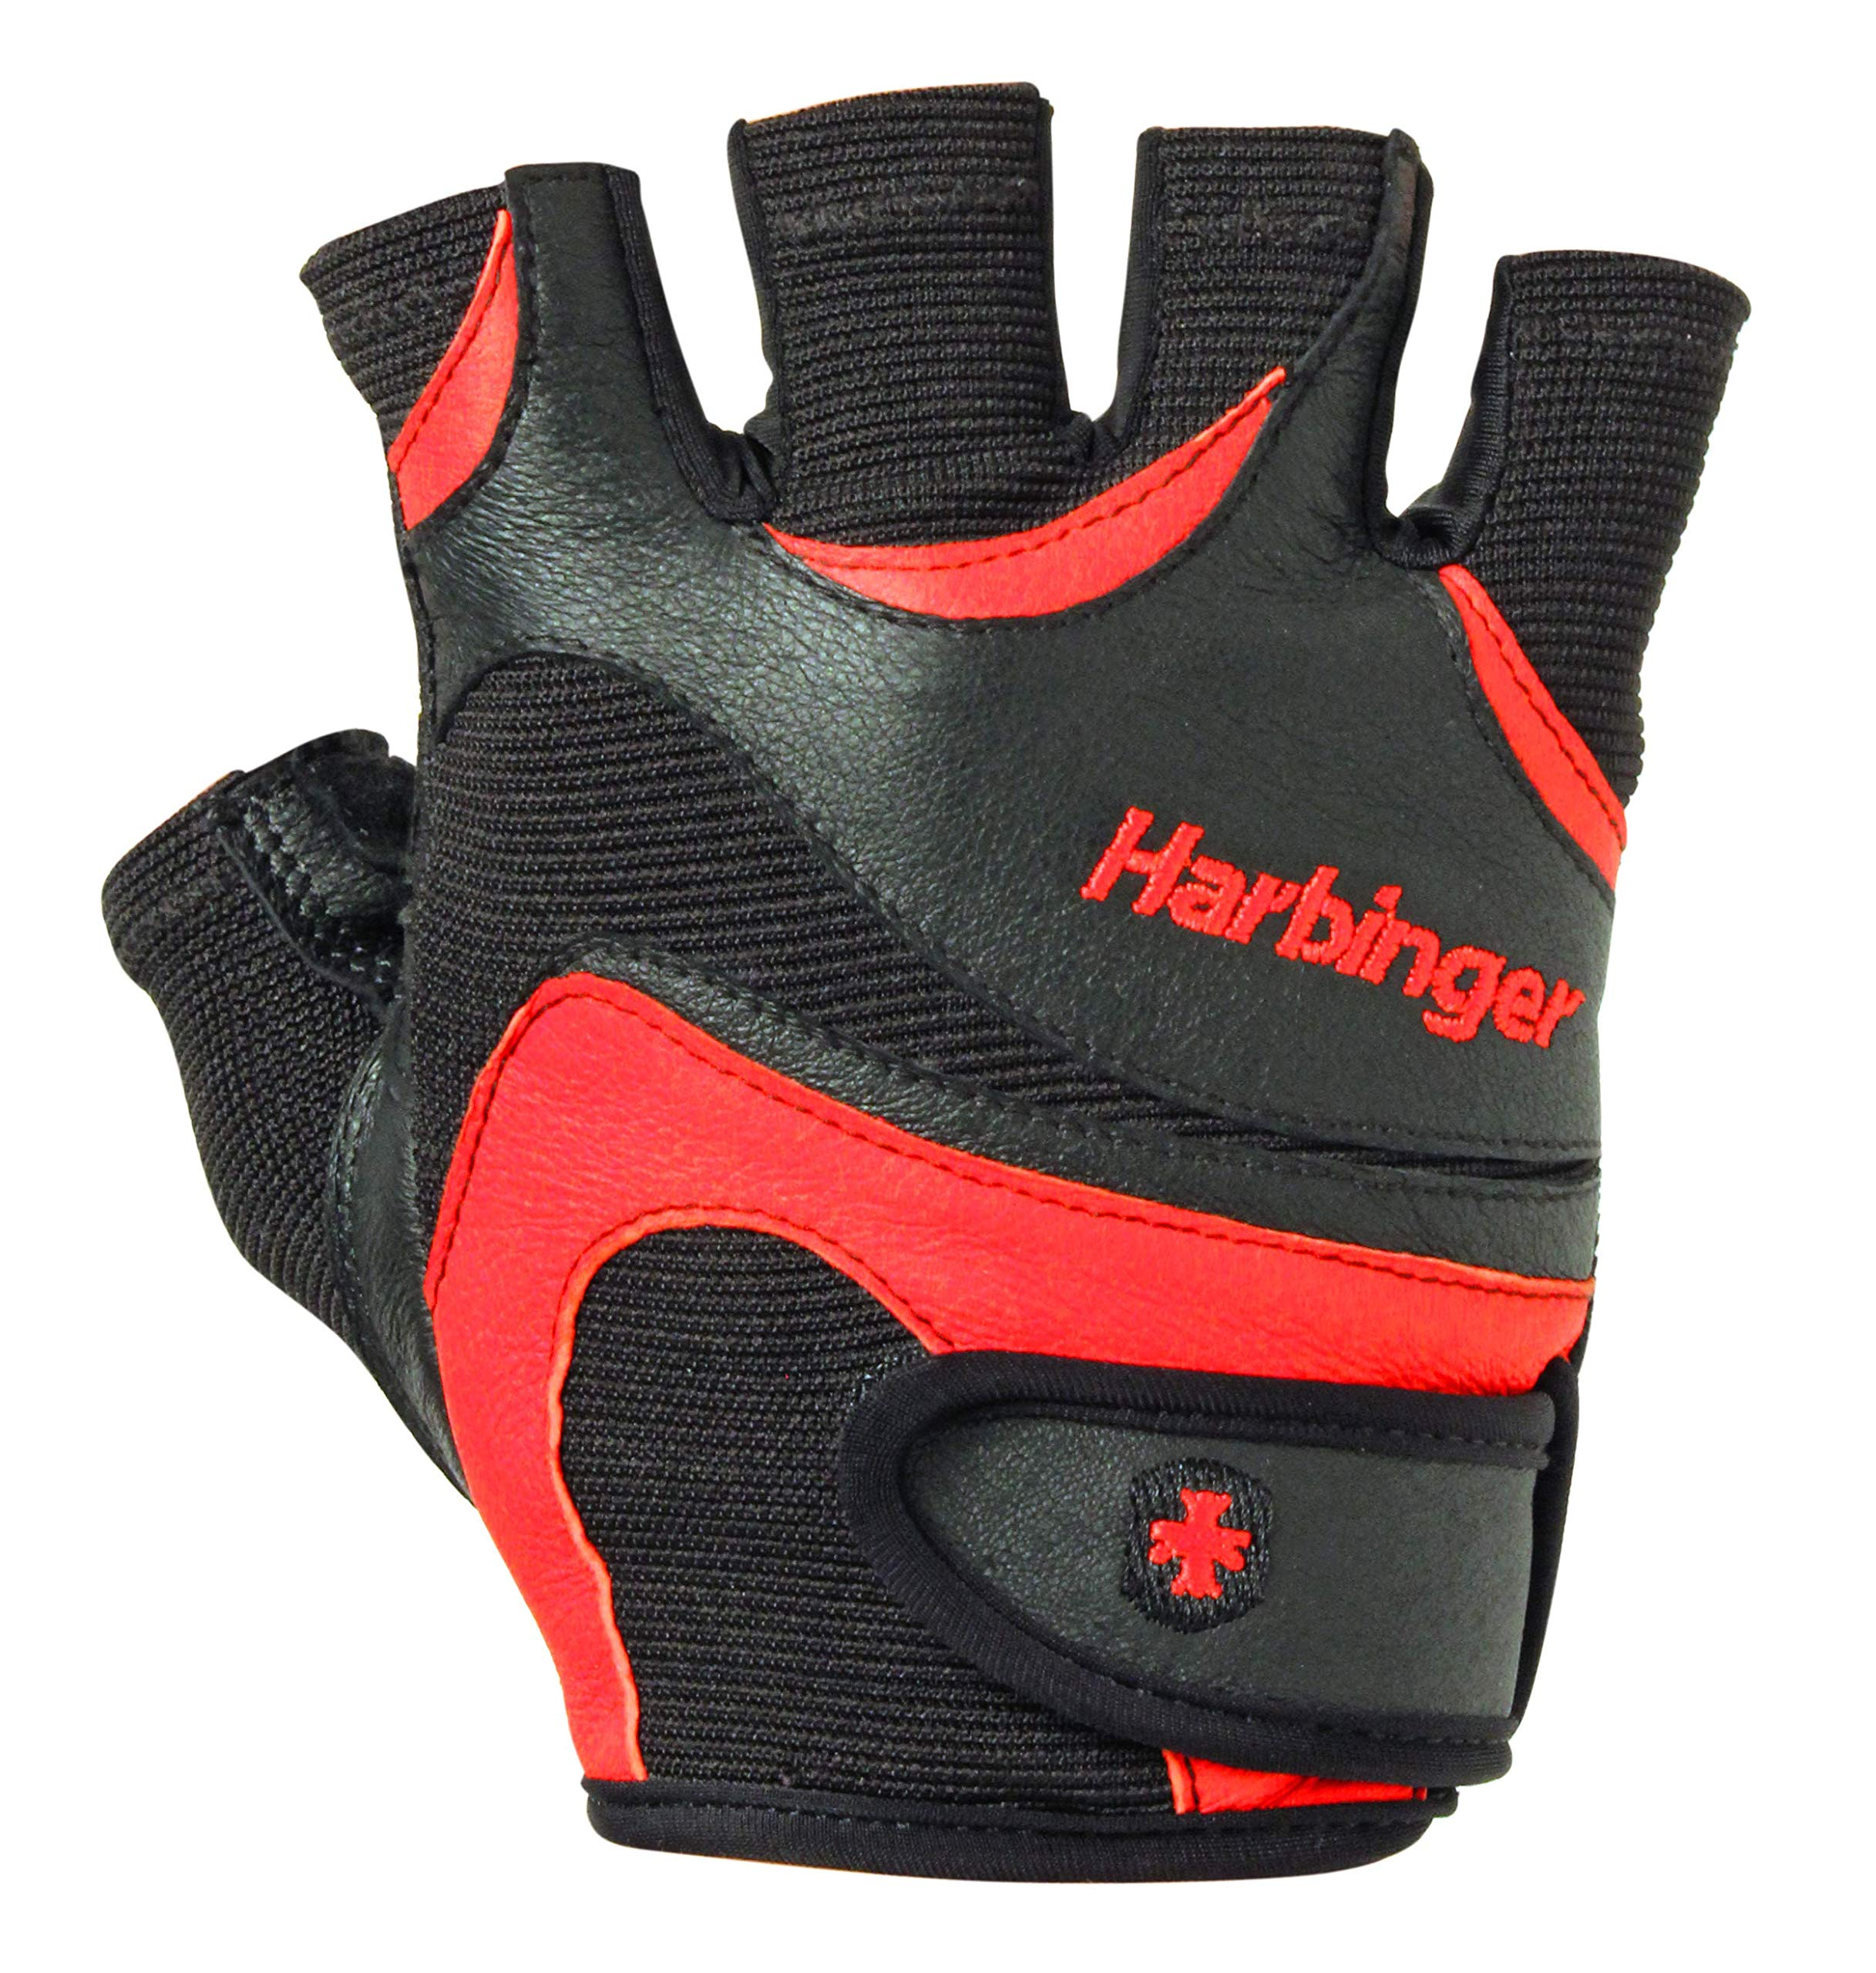 Harbinger FlexFit Non-Wristwrap Weightlifting Gloves with Flexible Cushioned Leather Palm (Pair), Red/Black, Large by Harbinger